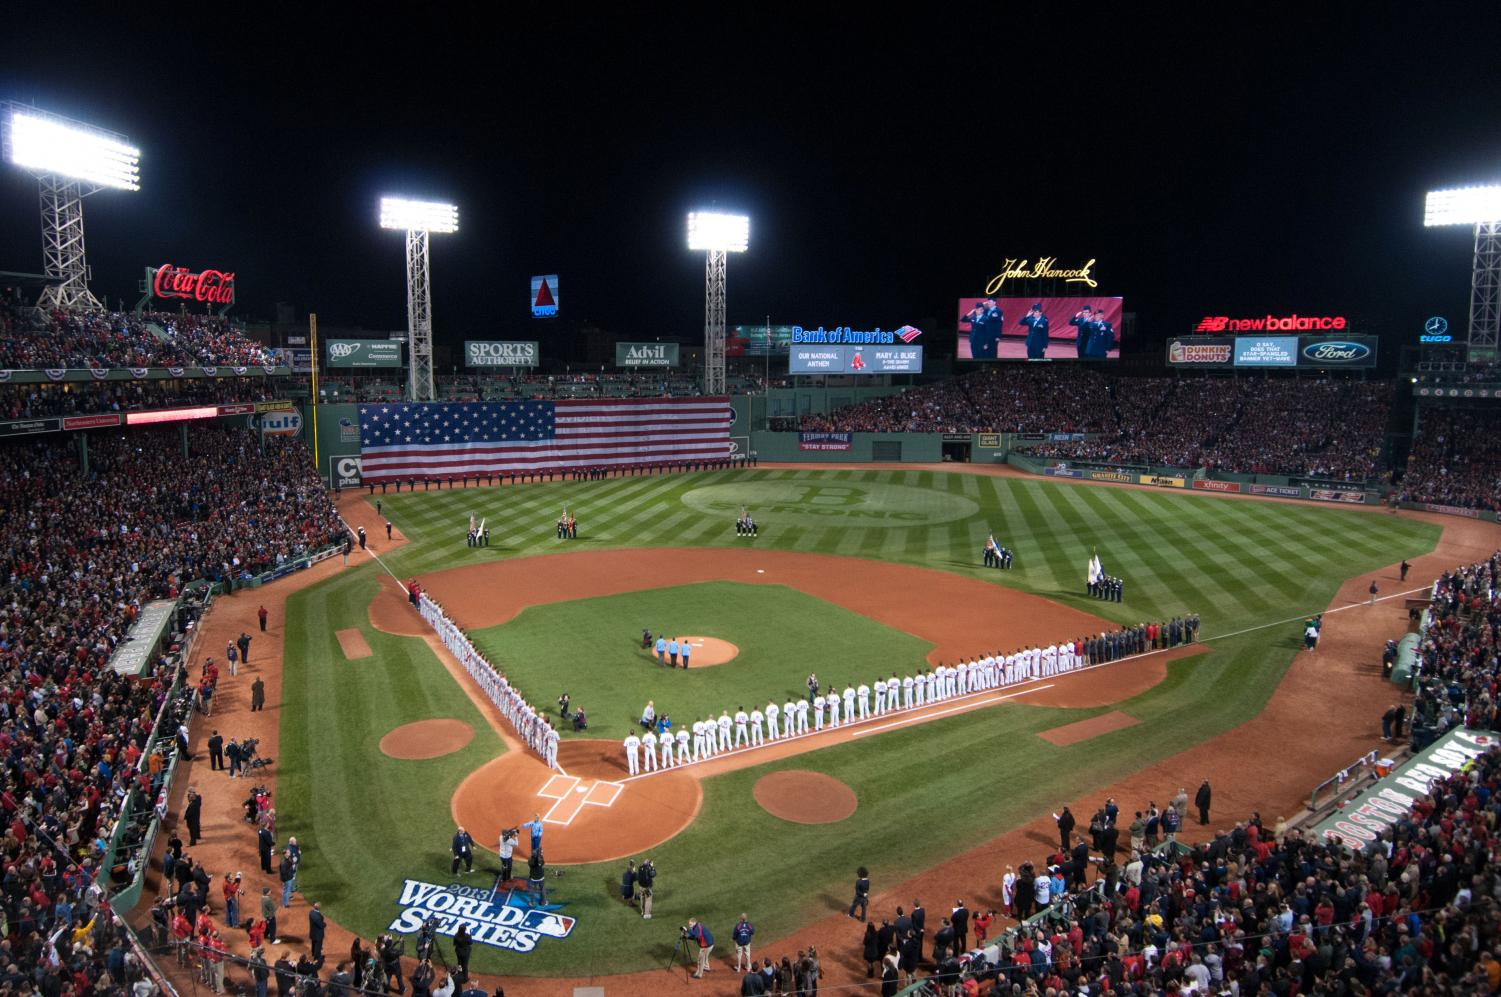 The Red Sox and Cardinals lineup prior to  the matchup. The stadium atmosphere at this World Series game is what draws many fans to the action packed postseason.